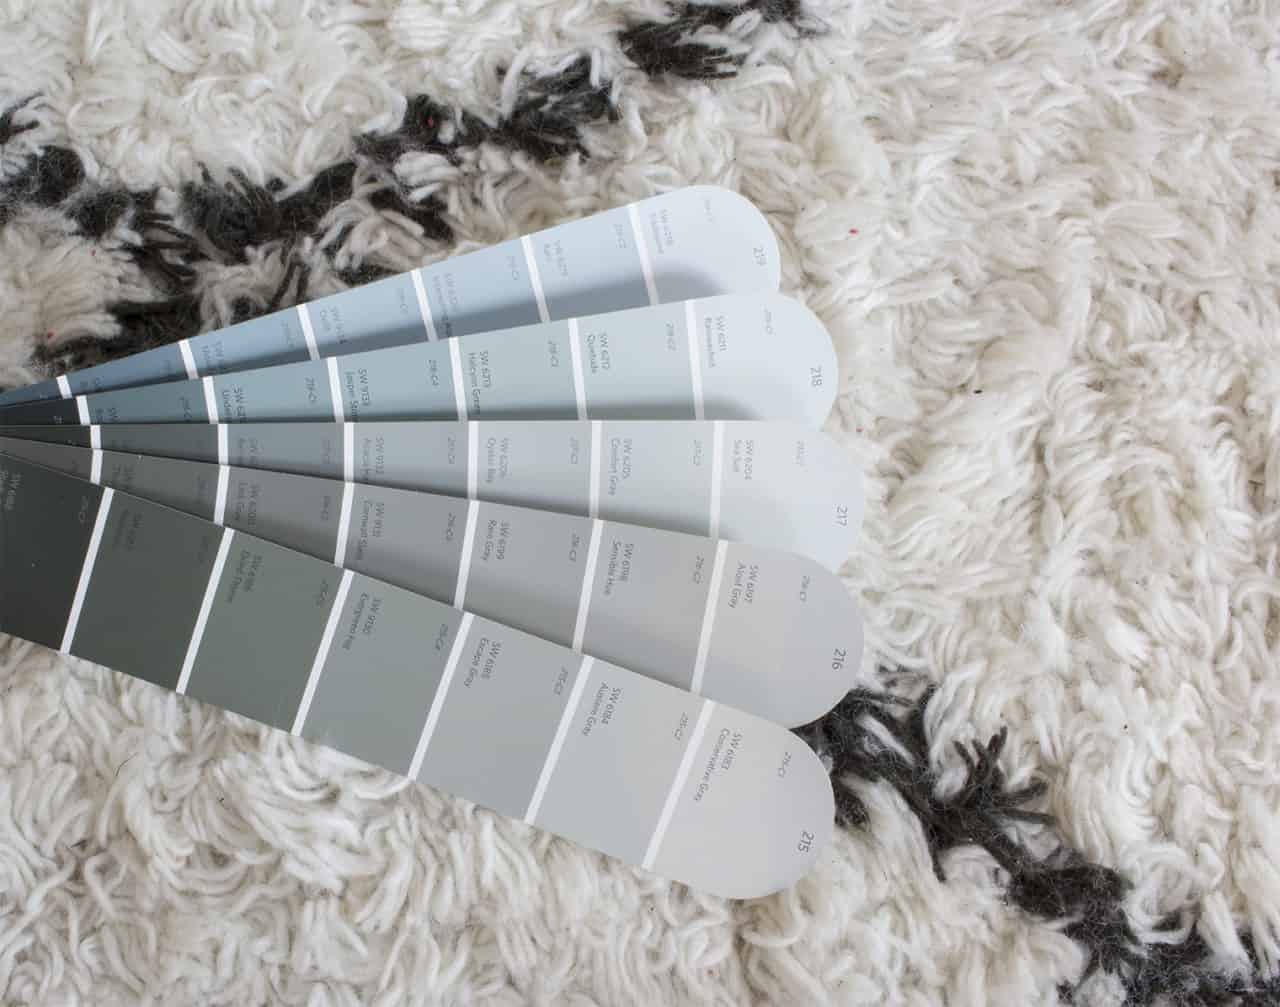 blue gray paint swatches laying on a rug, to show undertones at the bottom of each swatch